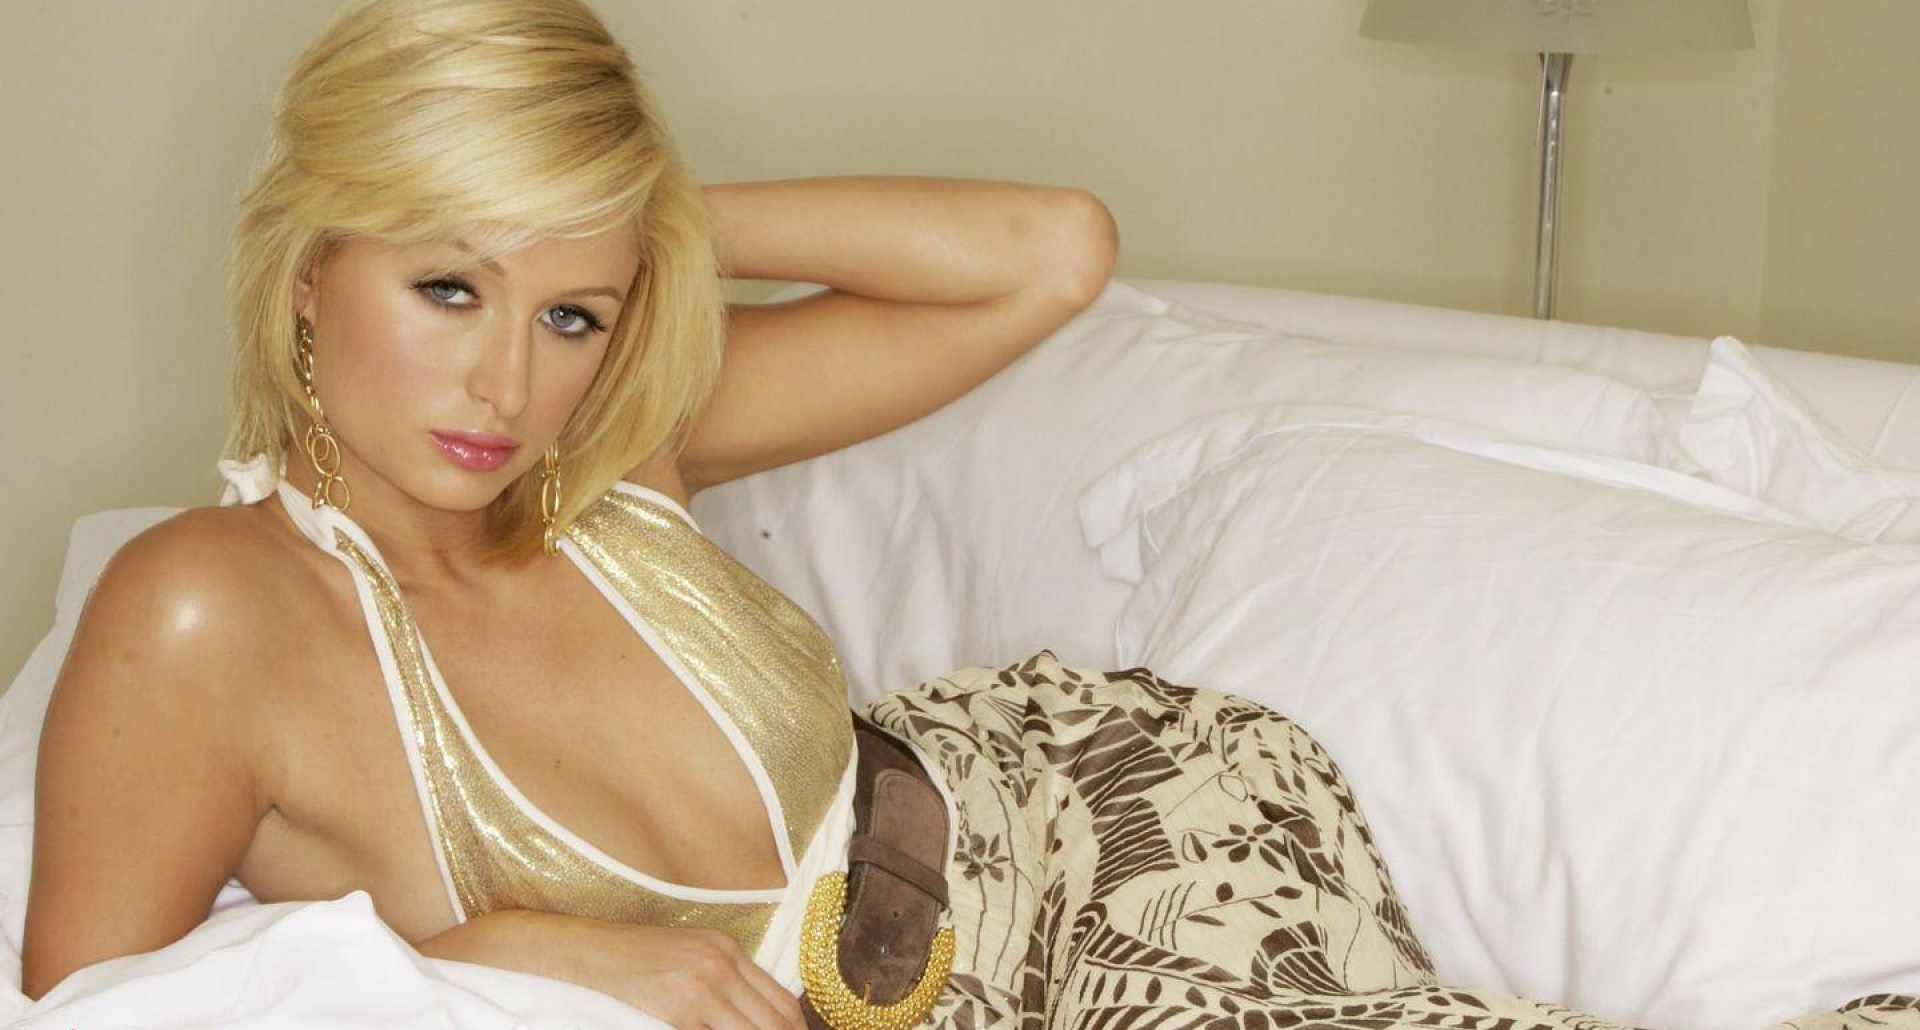 paris-hilton-photos